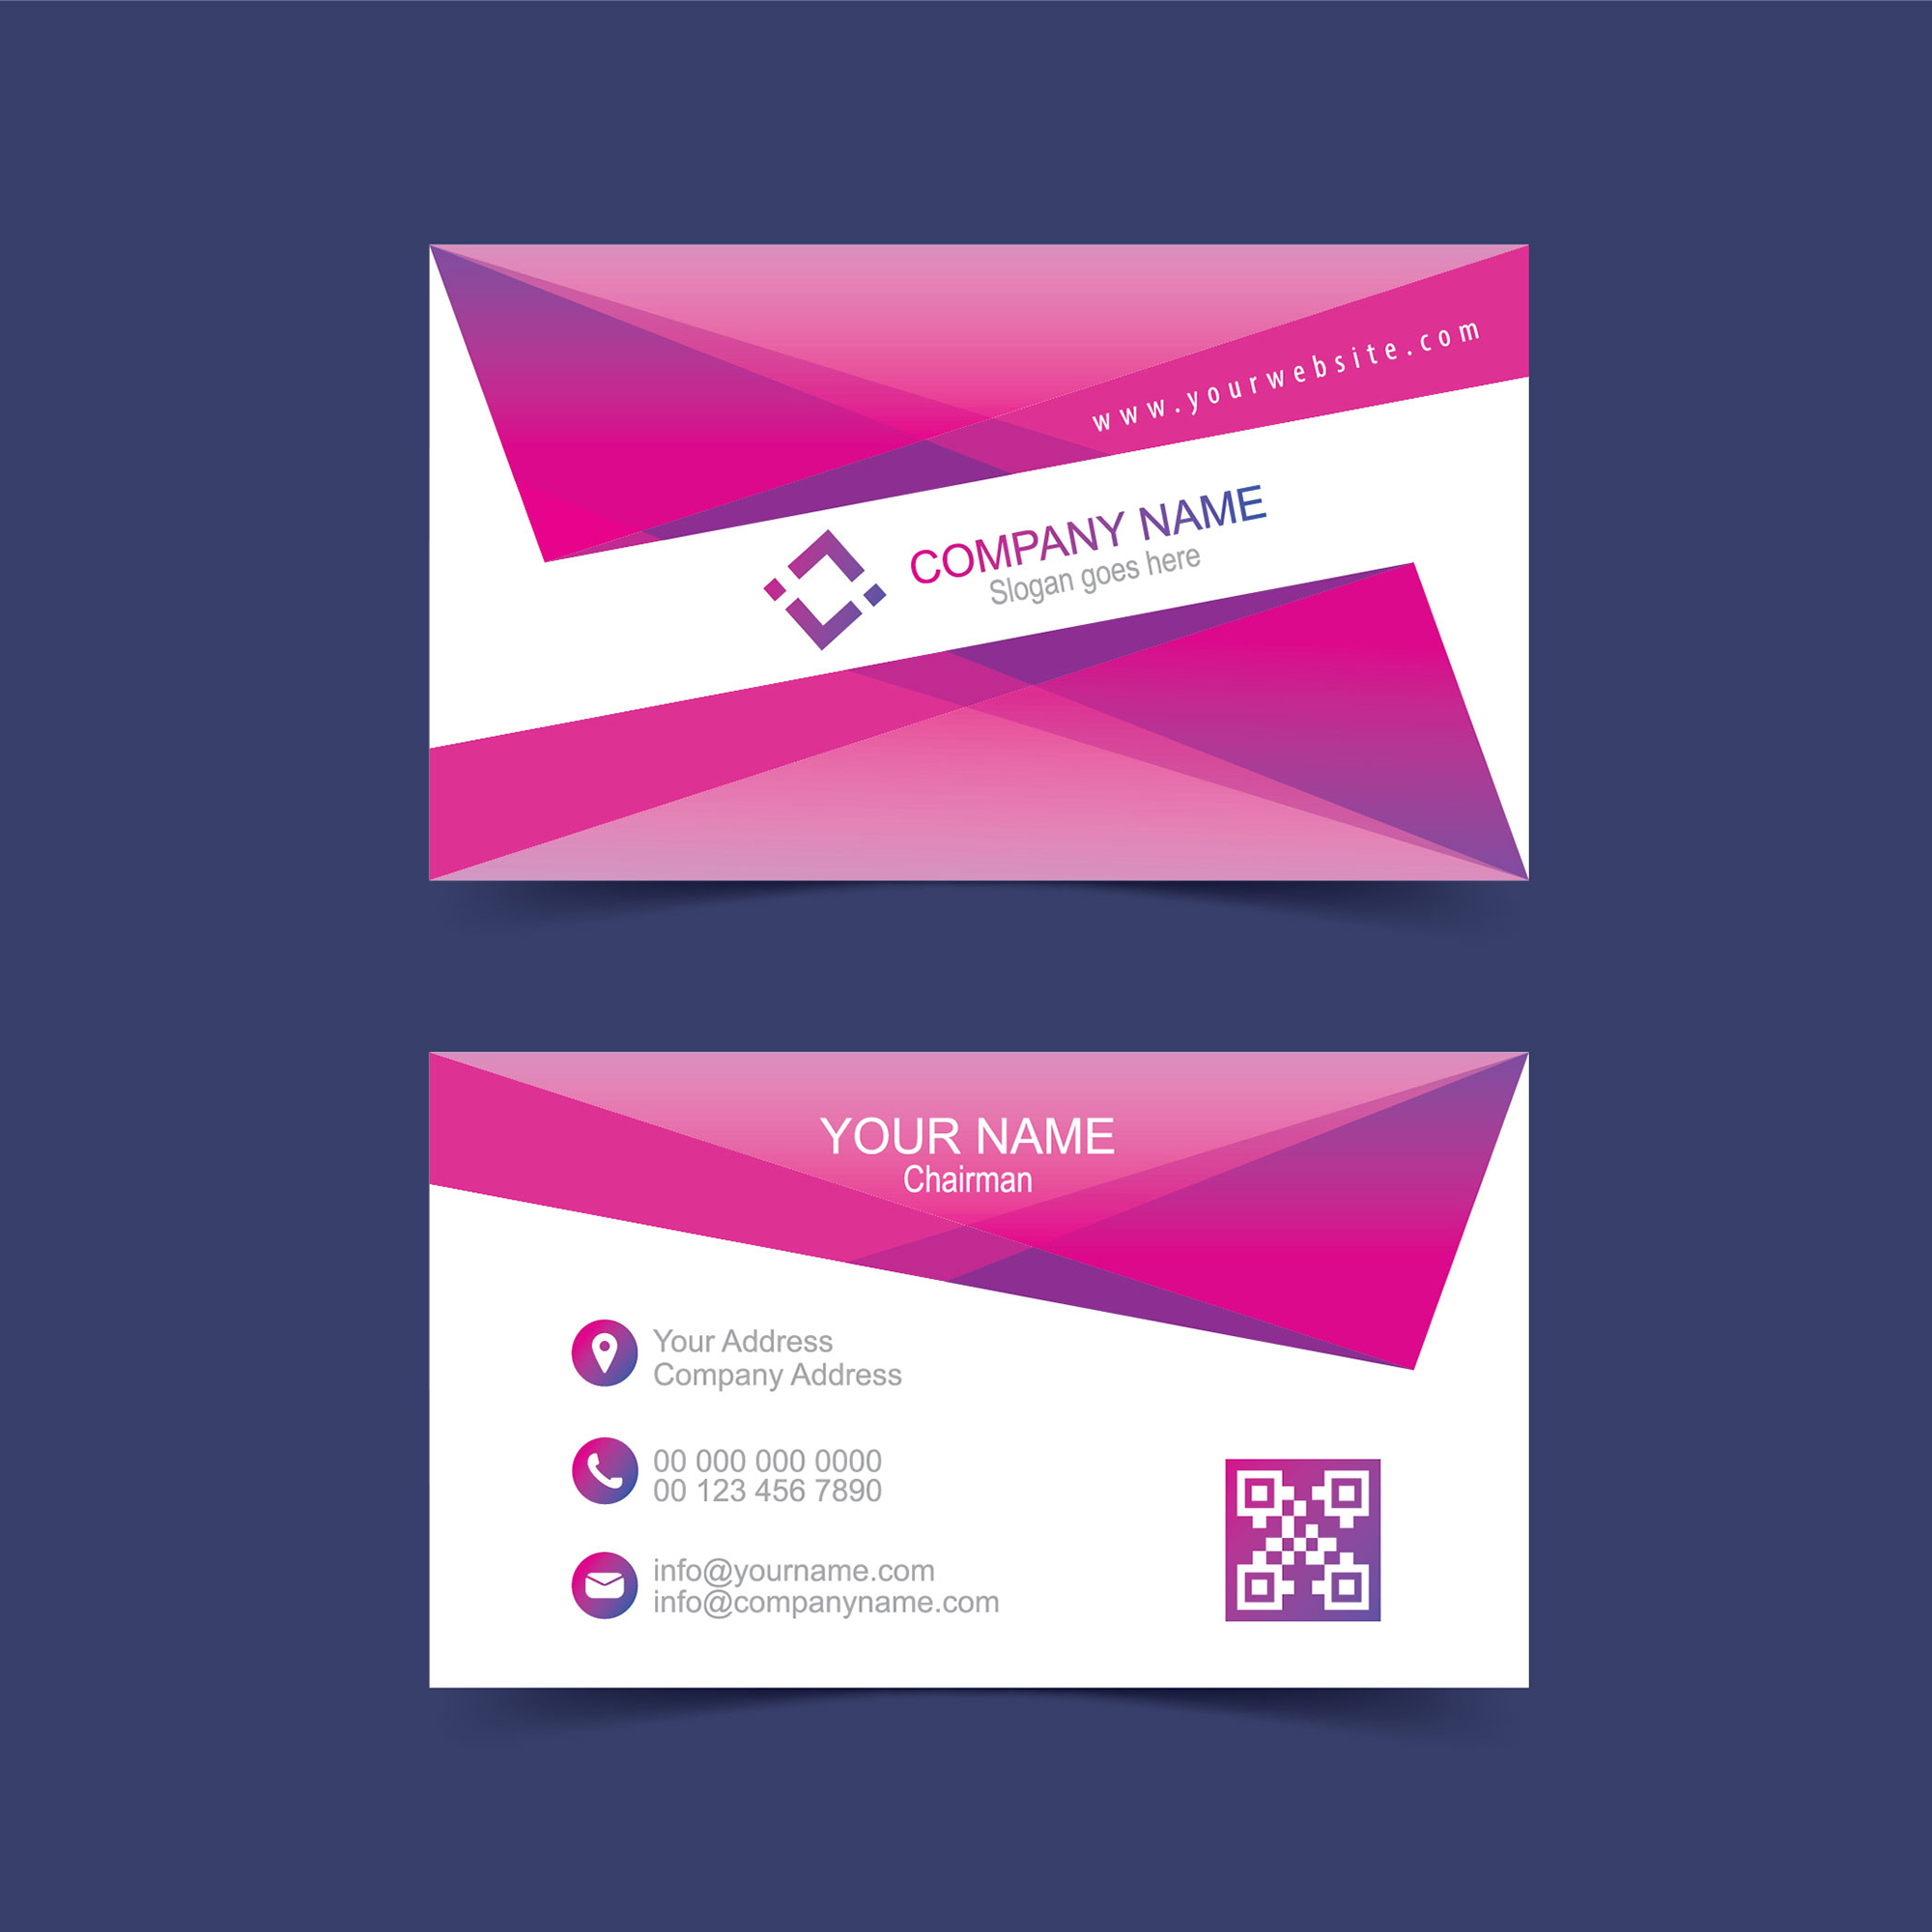 Modern Visiting Card Design Free Download - Wisxi.com